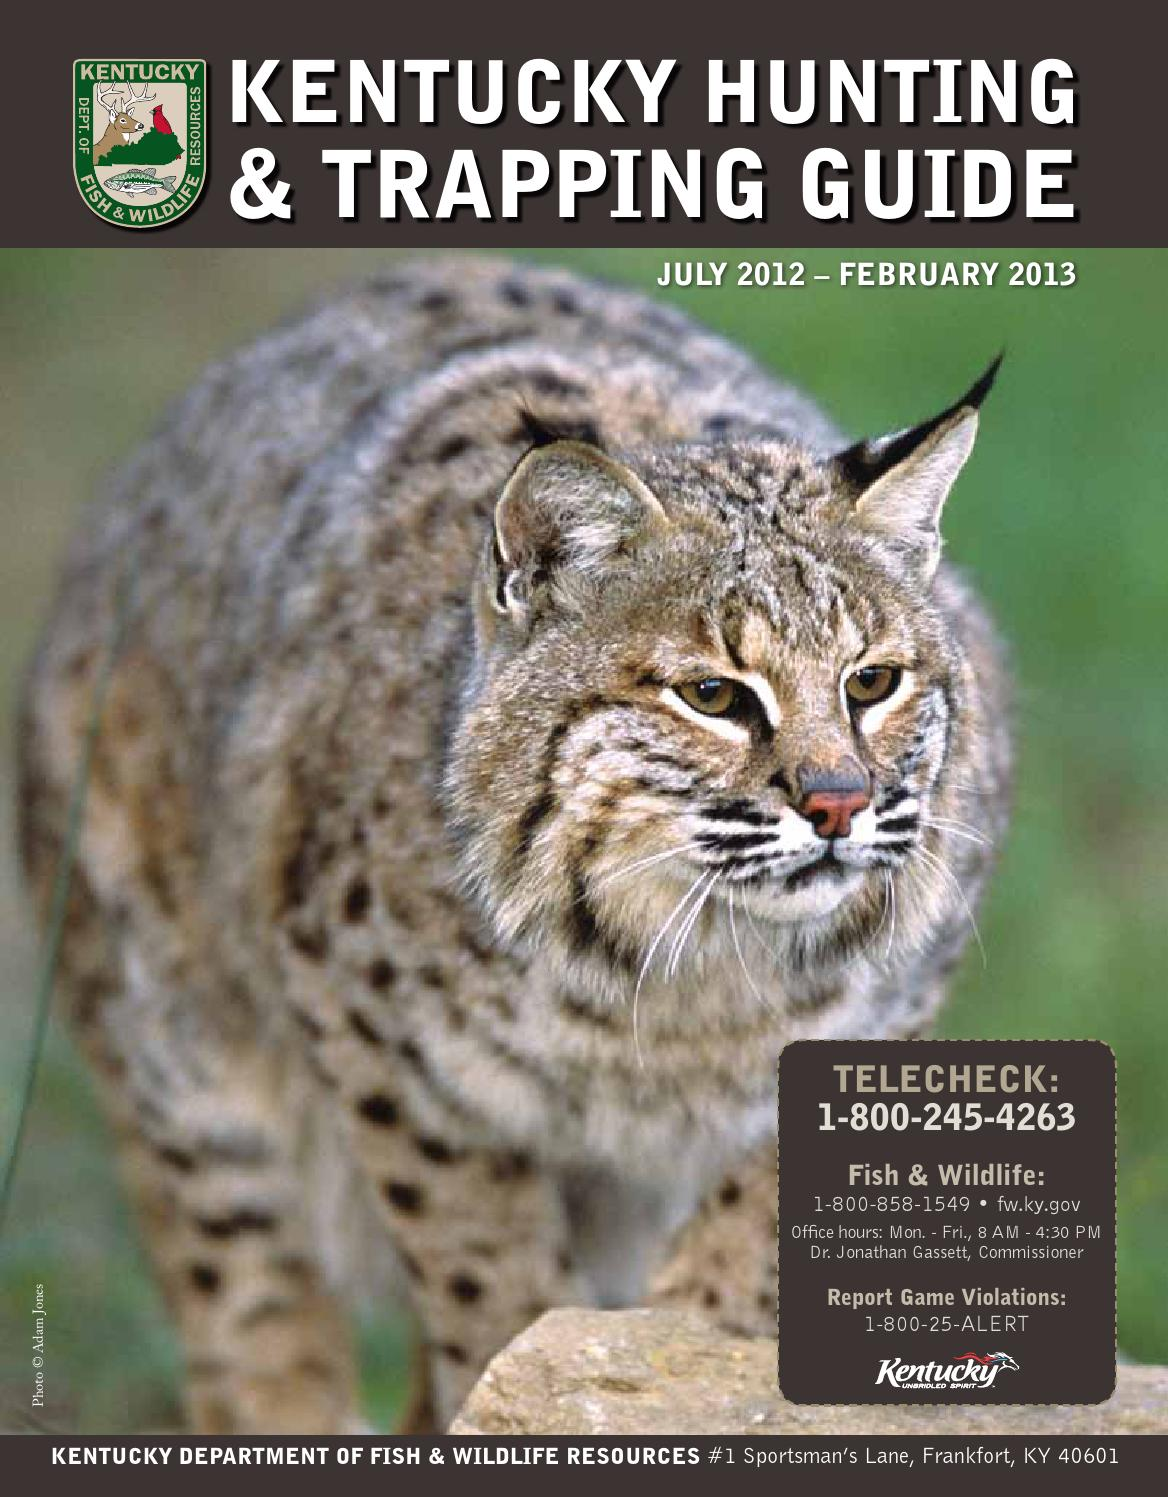 Ky hunting guide 2012 13 by kentucky department of fish for Ky fish and wildlife